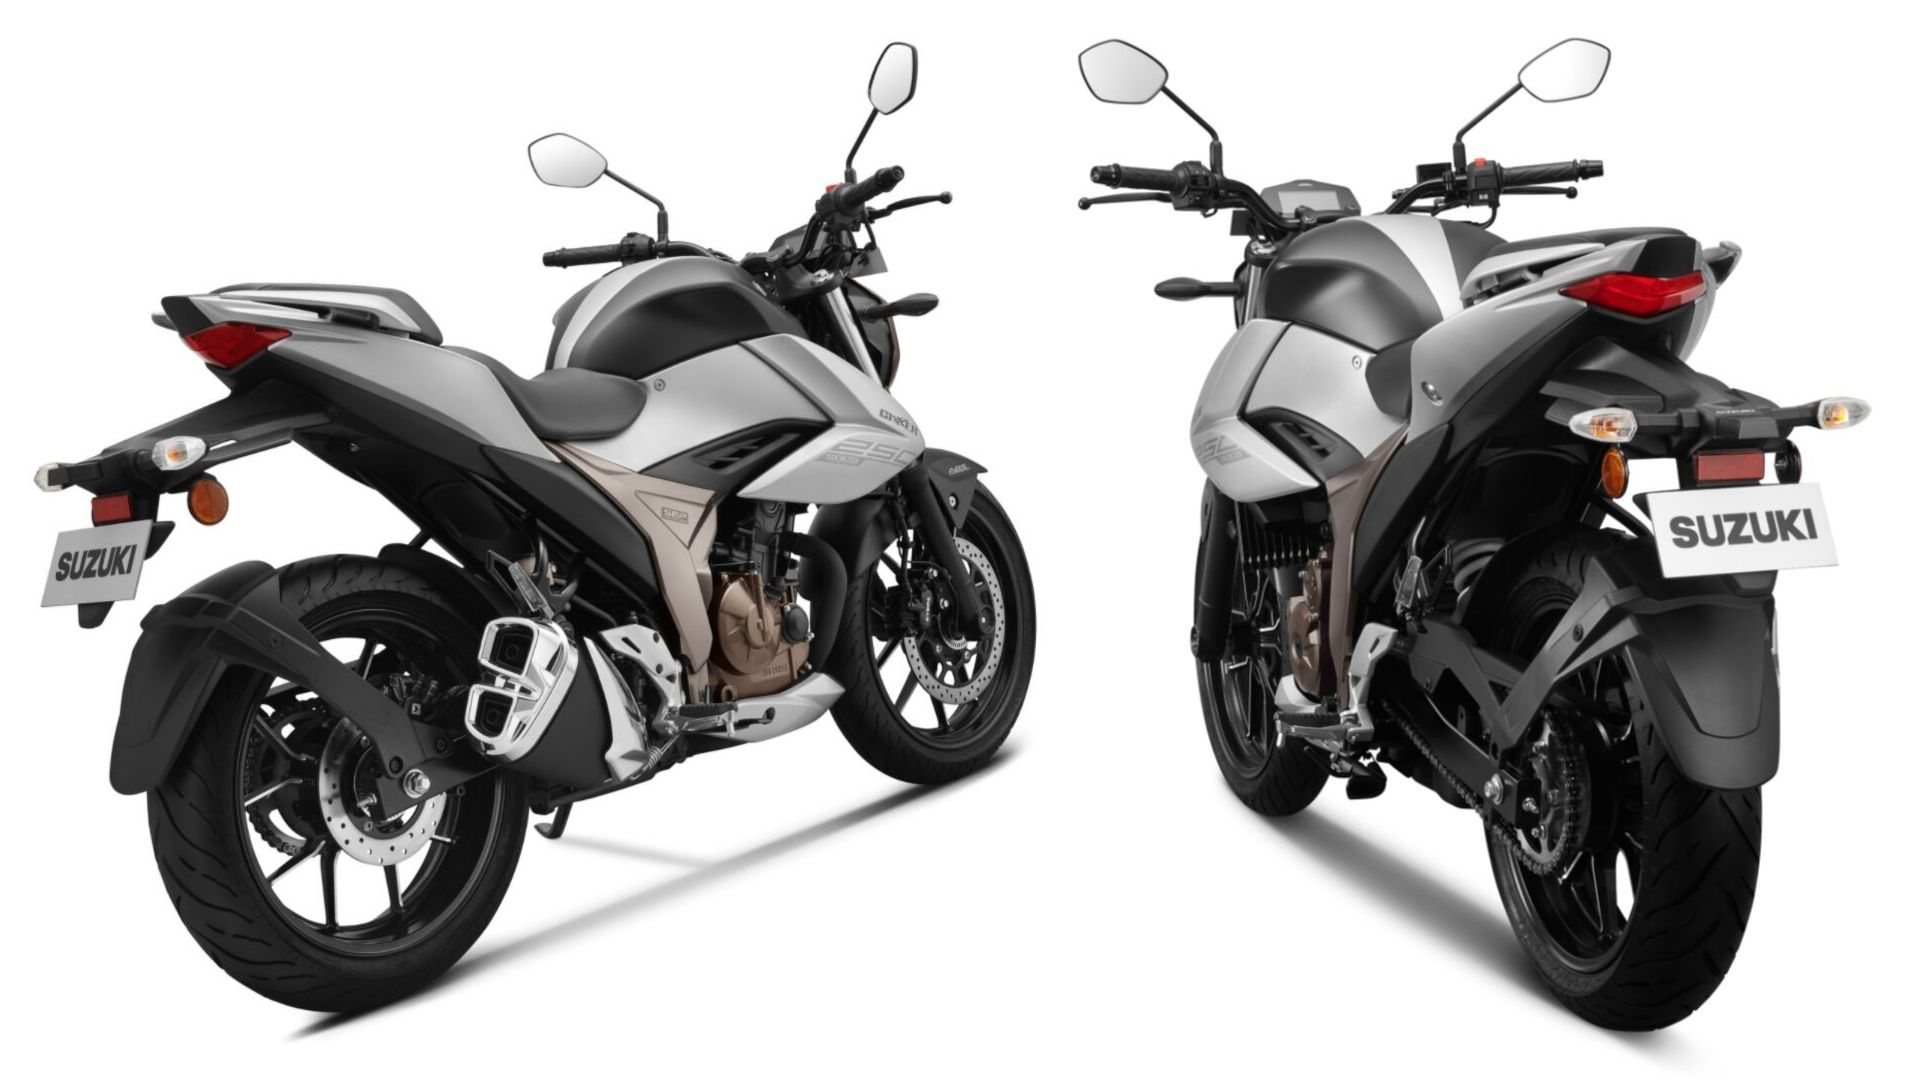 Suzuki India planning to launch the Gixxer 250 by June 2019